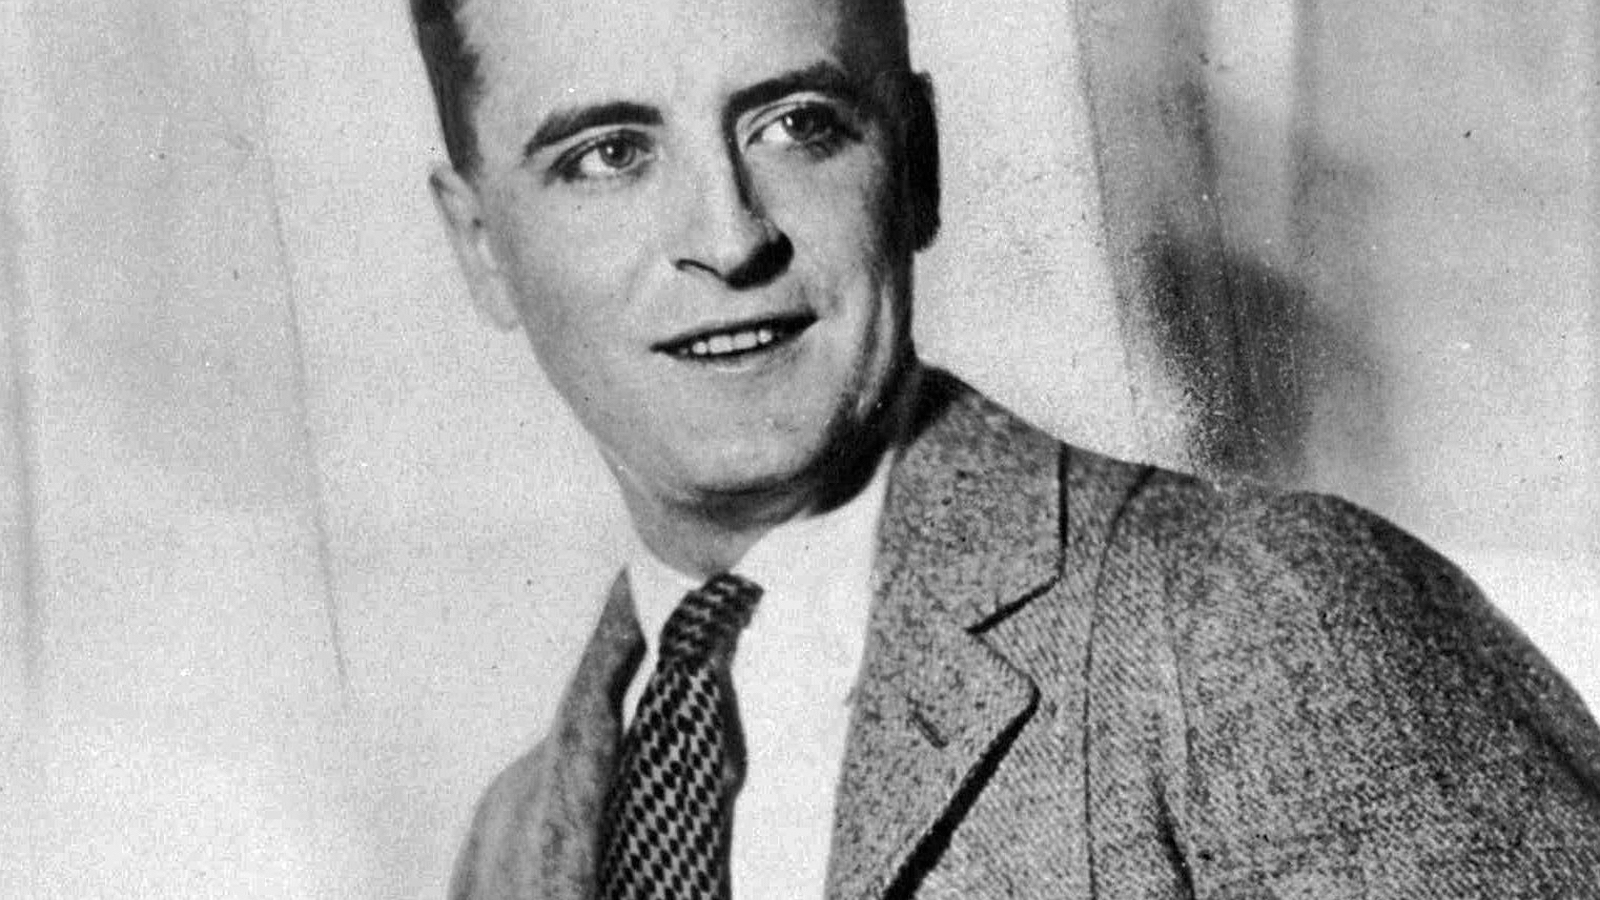 "FILE - In this file photo from the 1920s, American writer F. Scott Fitzgerald poses for a portrait. A short story by F. Scott Fitzgerald, ""Temperature,"" is receiving its publishing debut in the current issue of the literary quarterly The Strand Magazine. (AP Photo/File)"